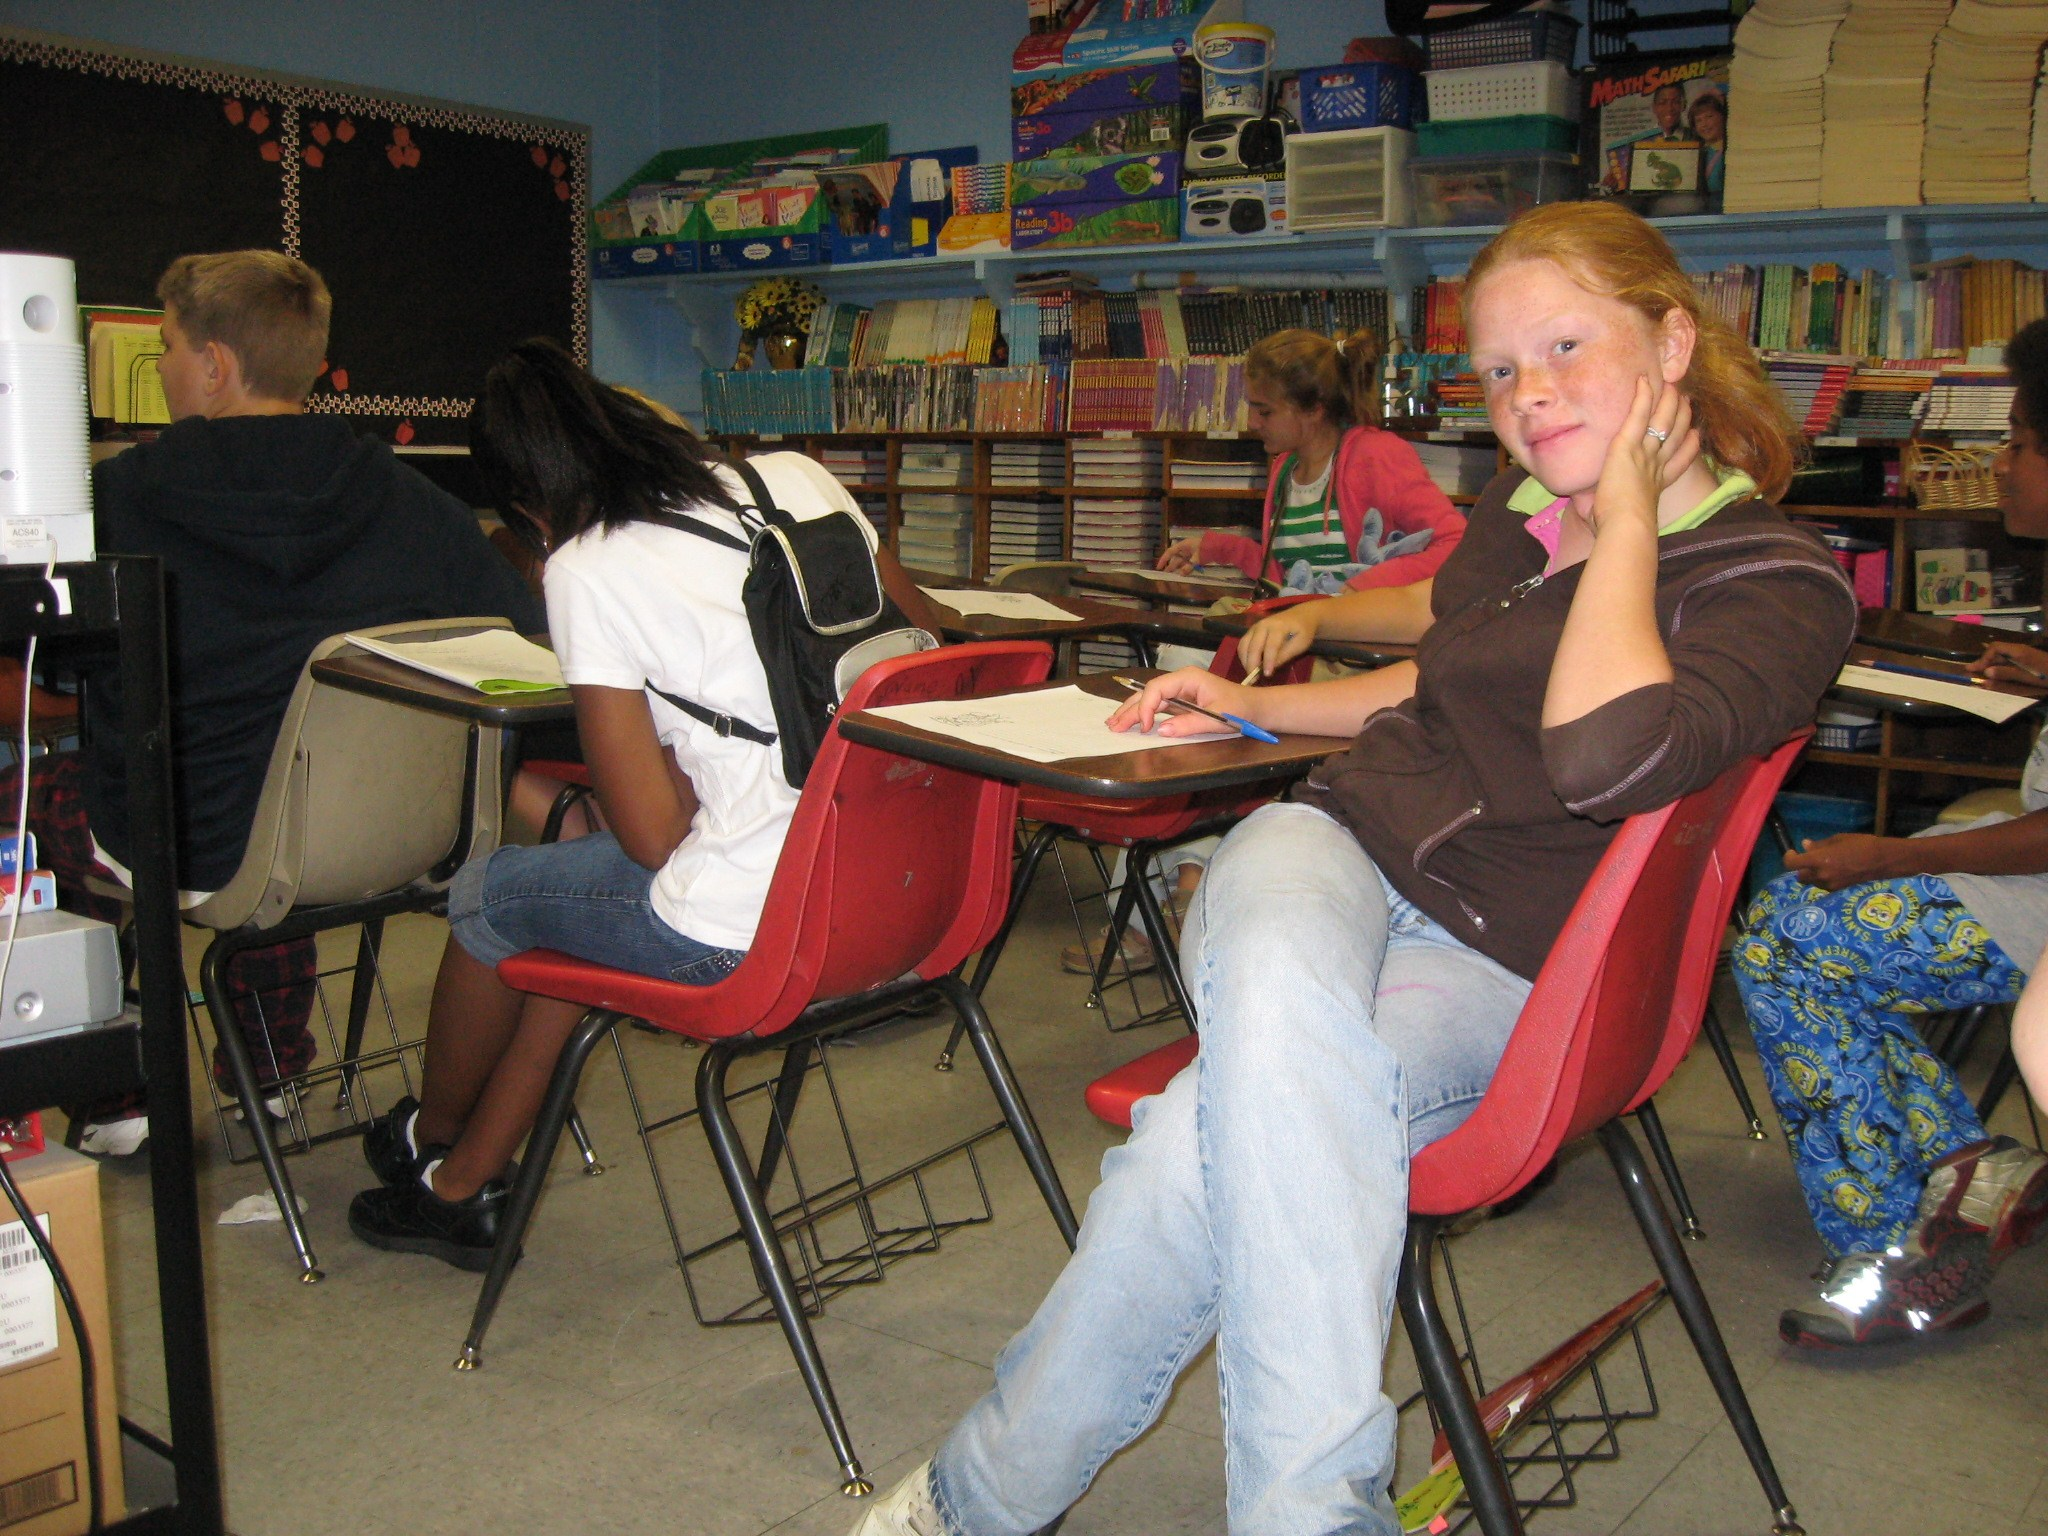 Students in an elementary school classroom, 2008